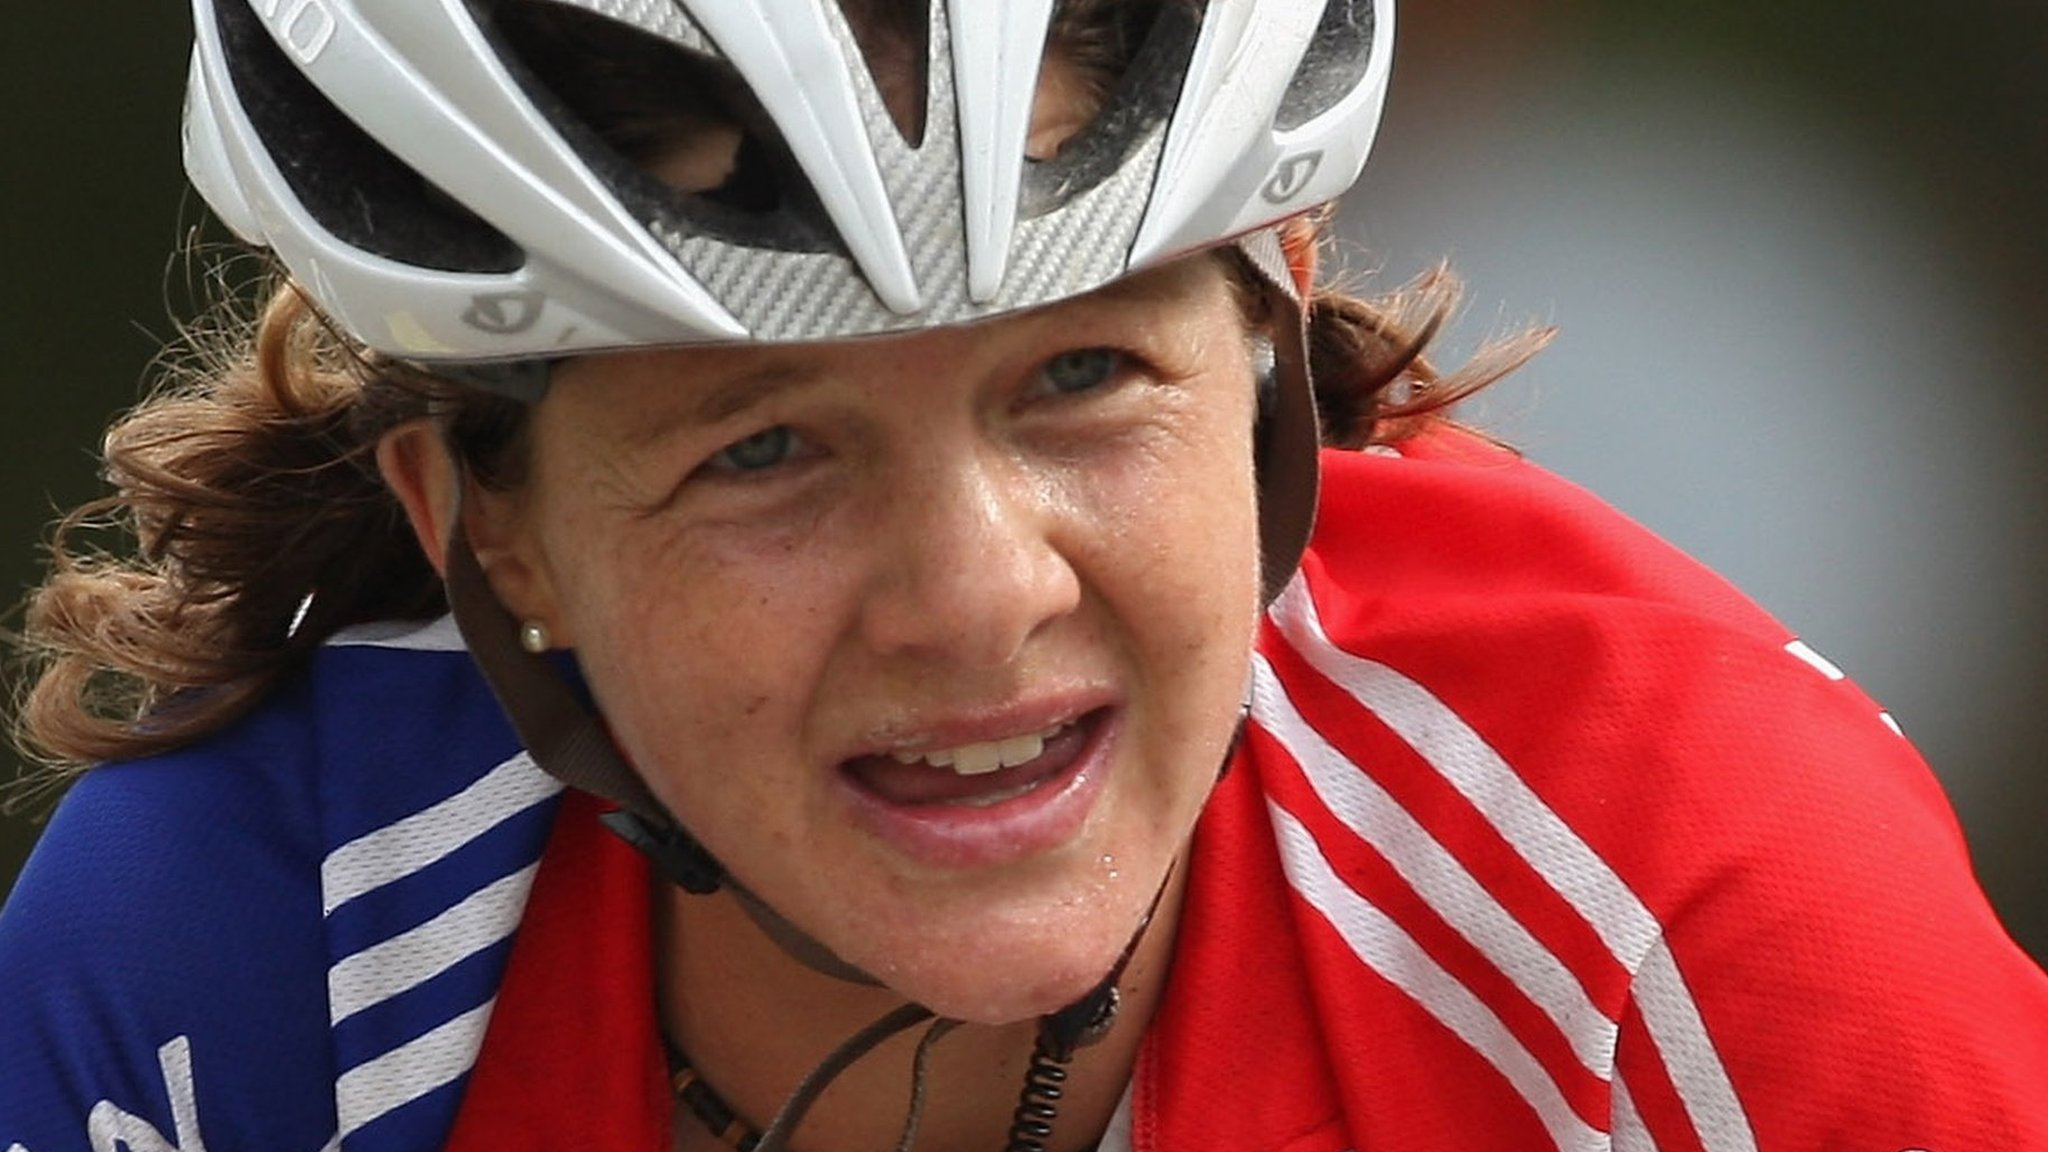 I didnt think I was high risk - cyclist Laws aims to raise cancer awareness